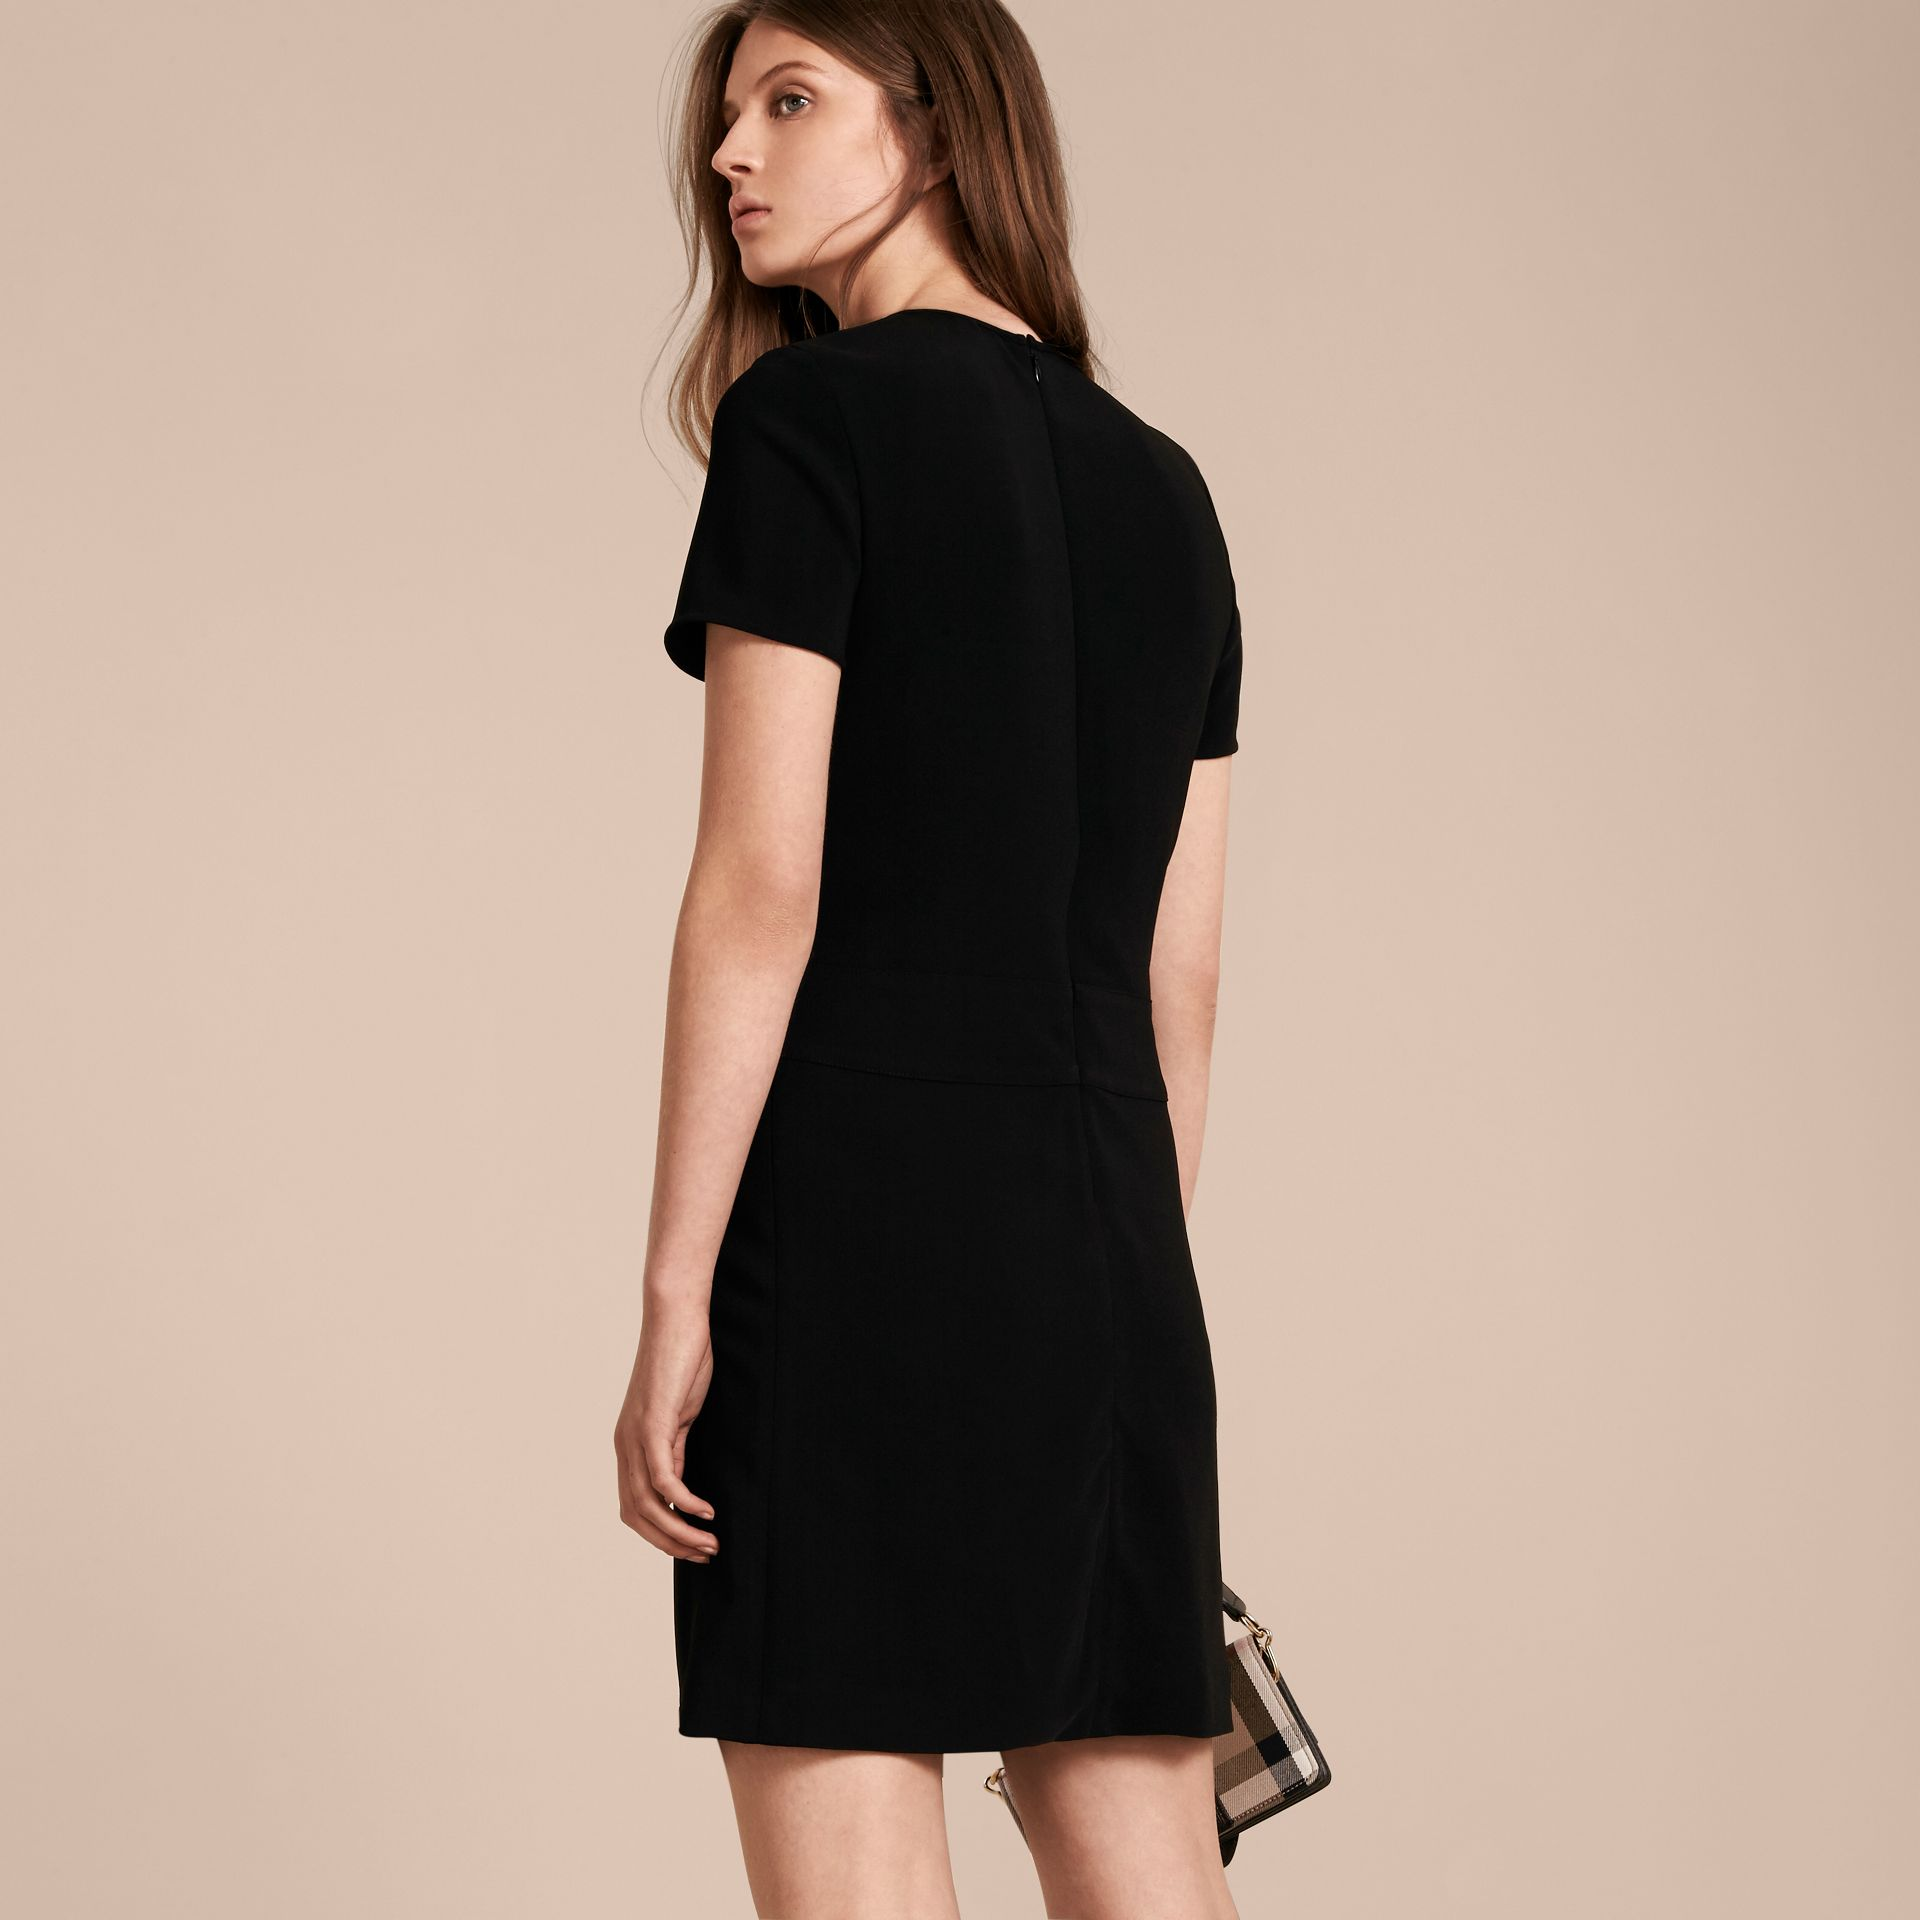 Black Buckle Detail Pleated Shift Dress Black - gallery image 3